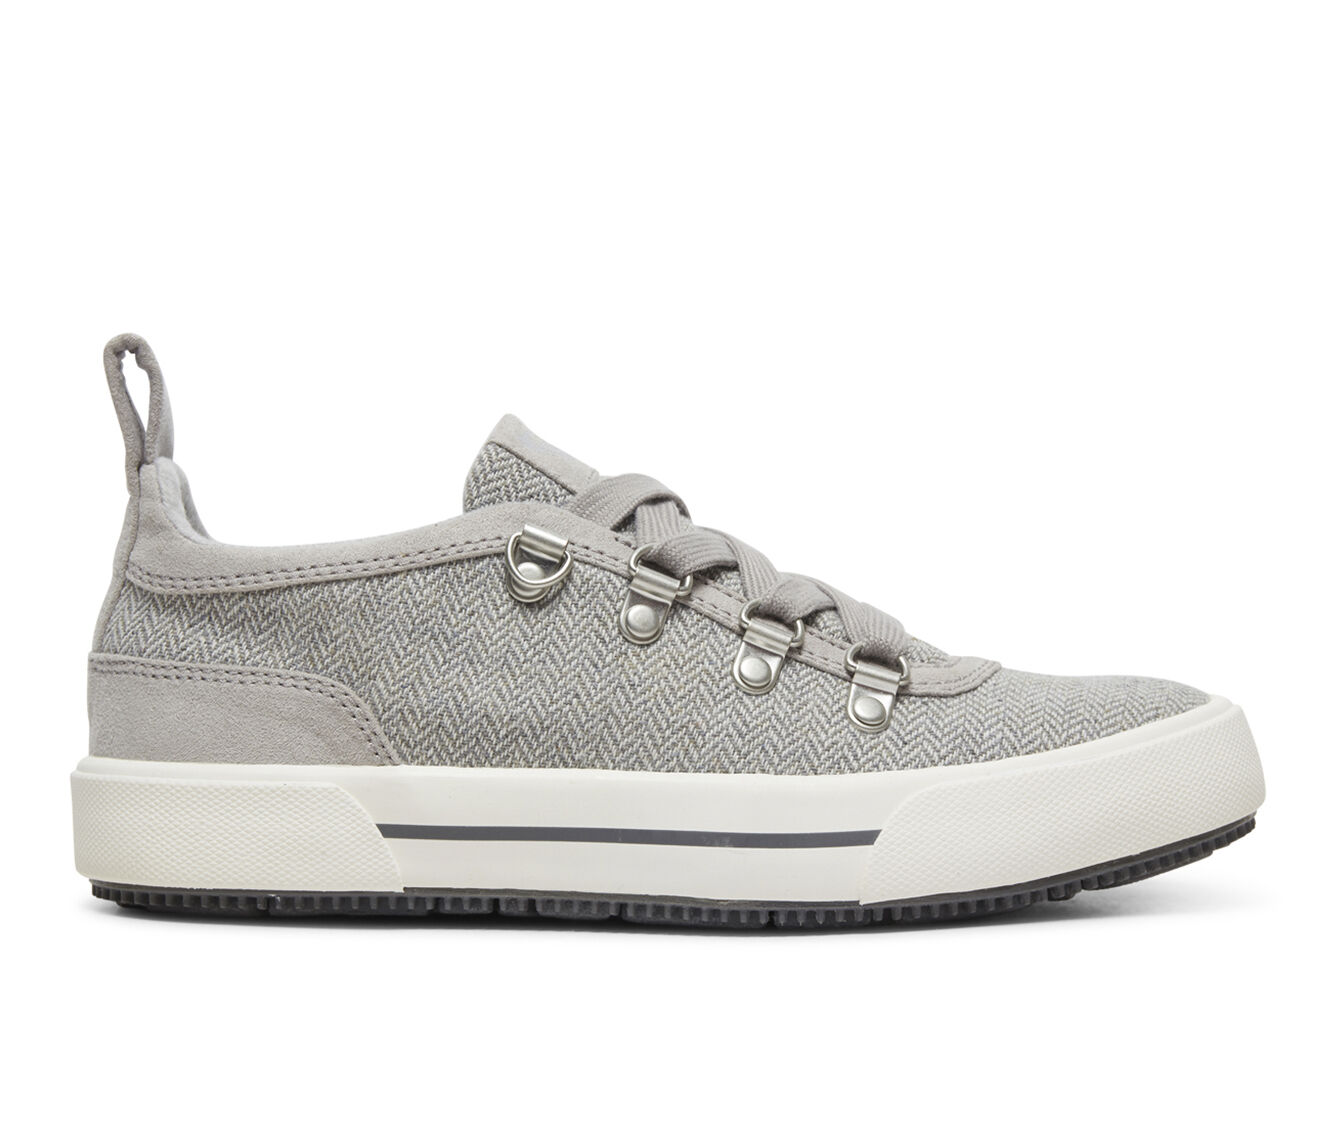 Women's Roxy Shane Sneakers Grey